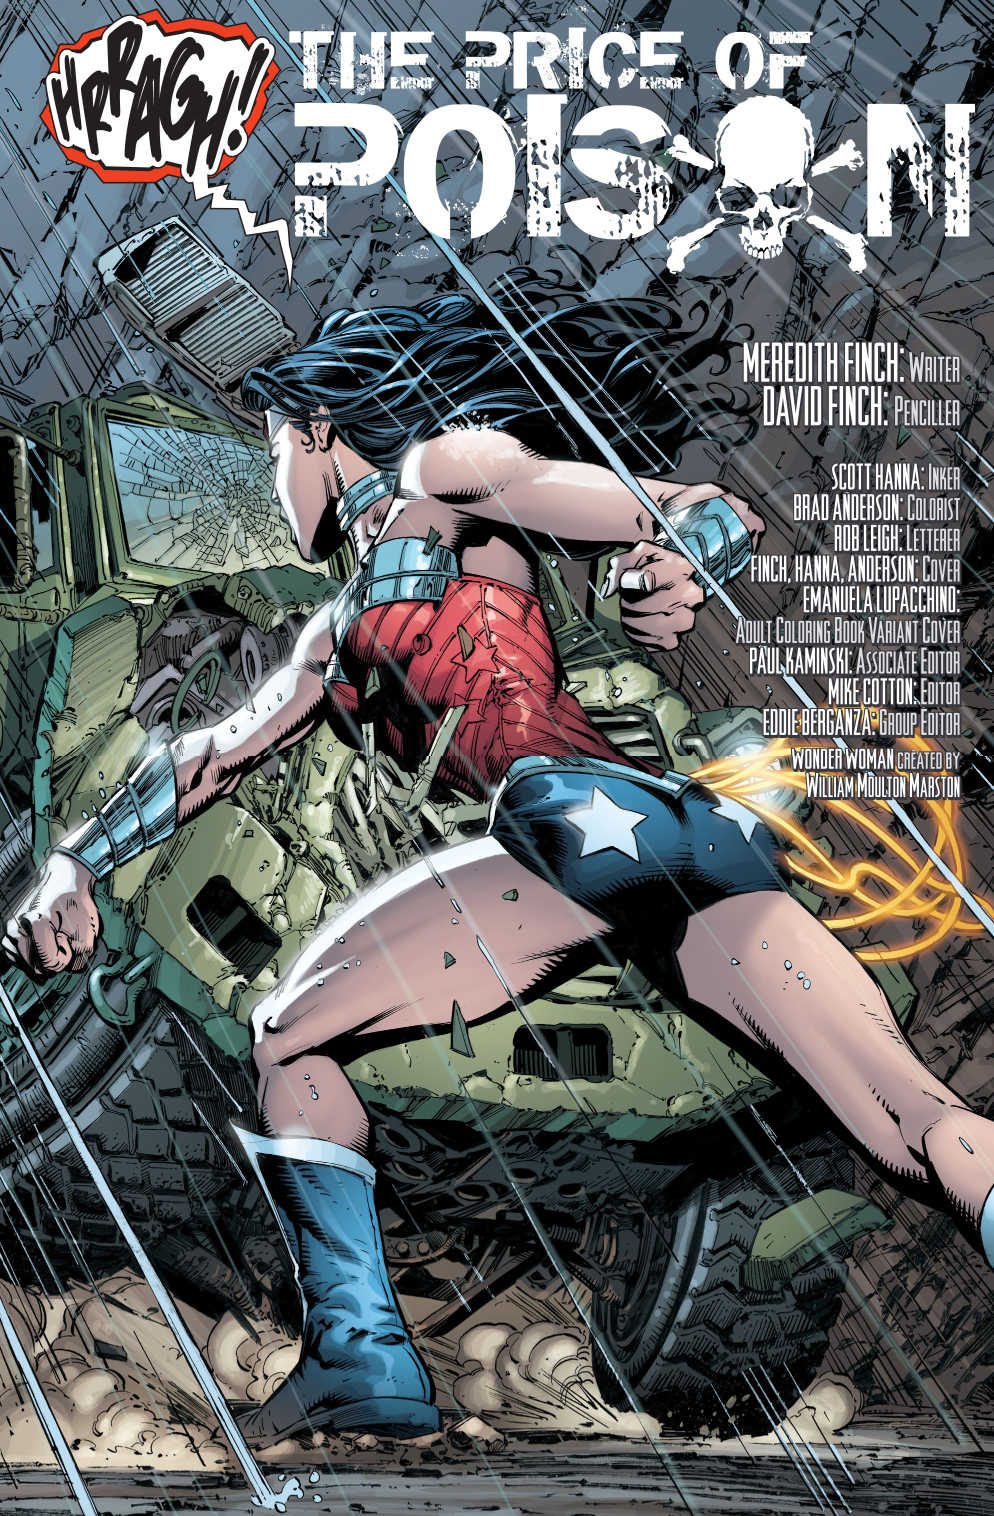 From – Wonder Woman Vol. 4 #50